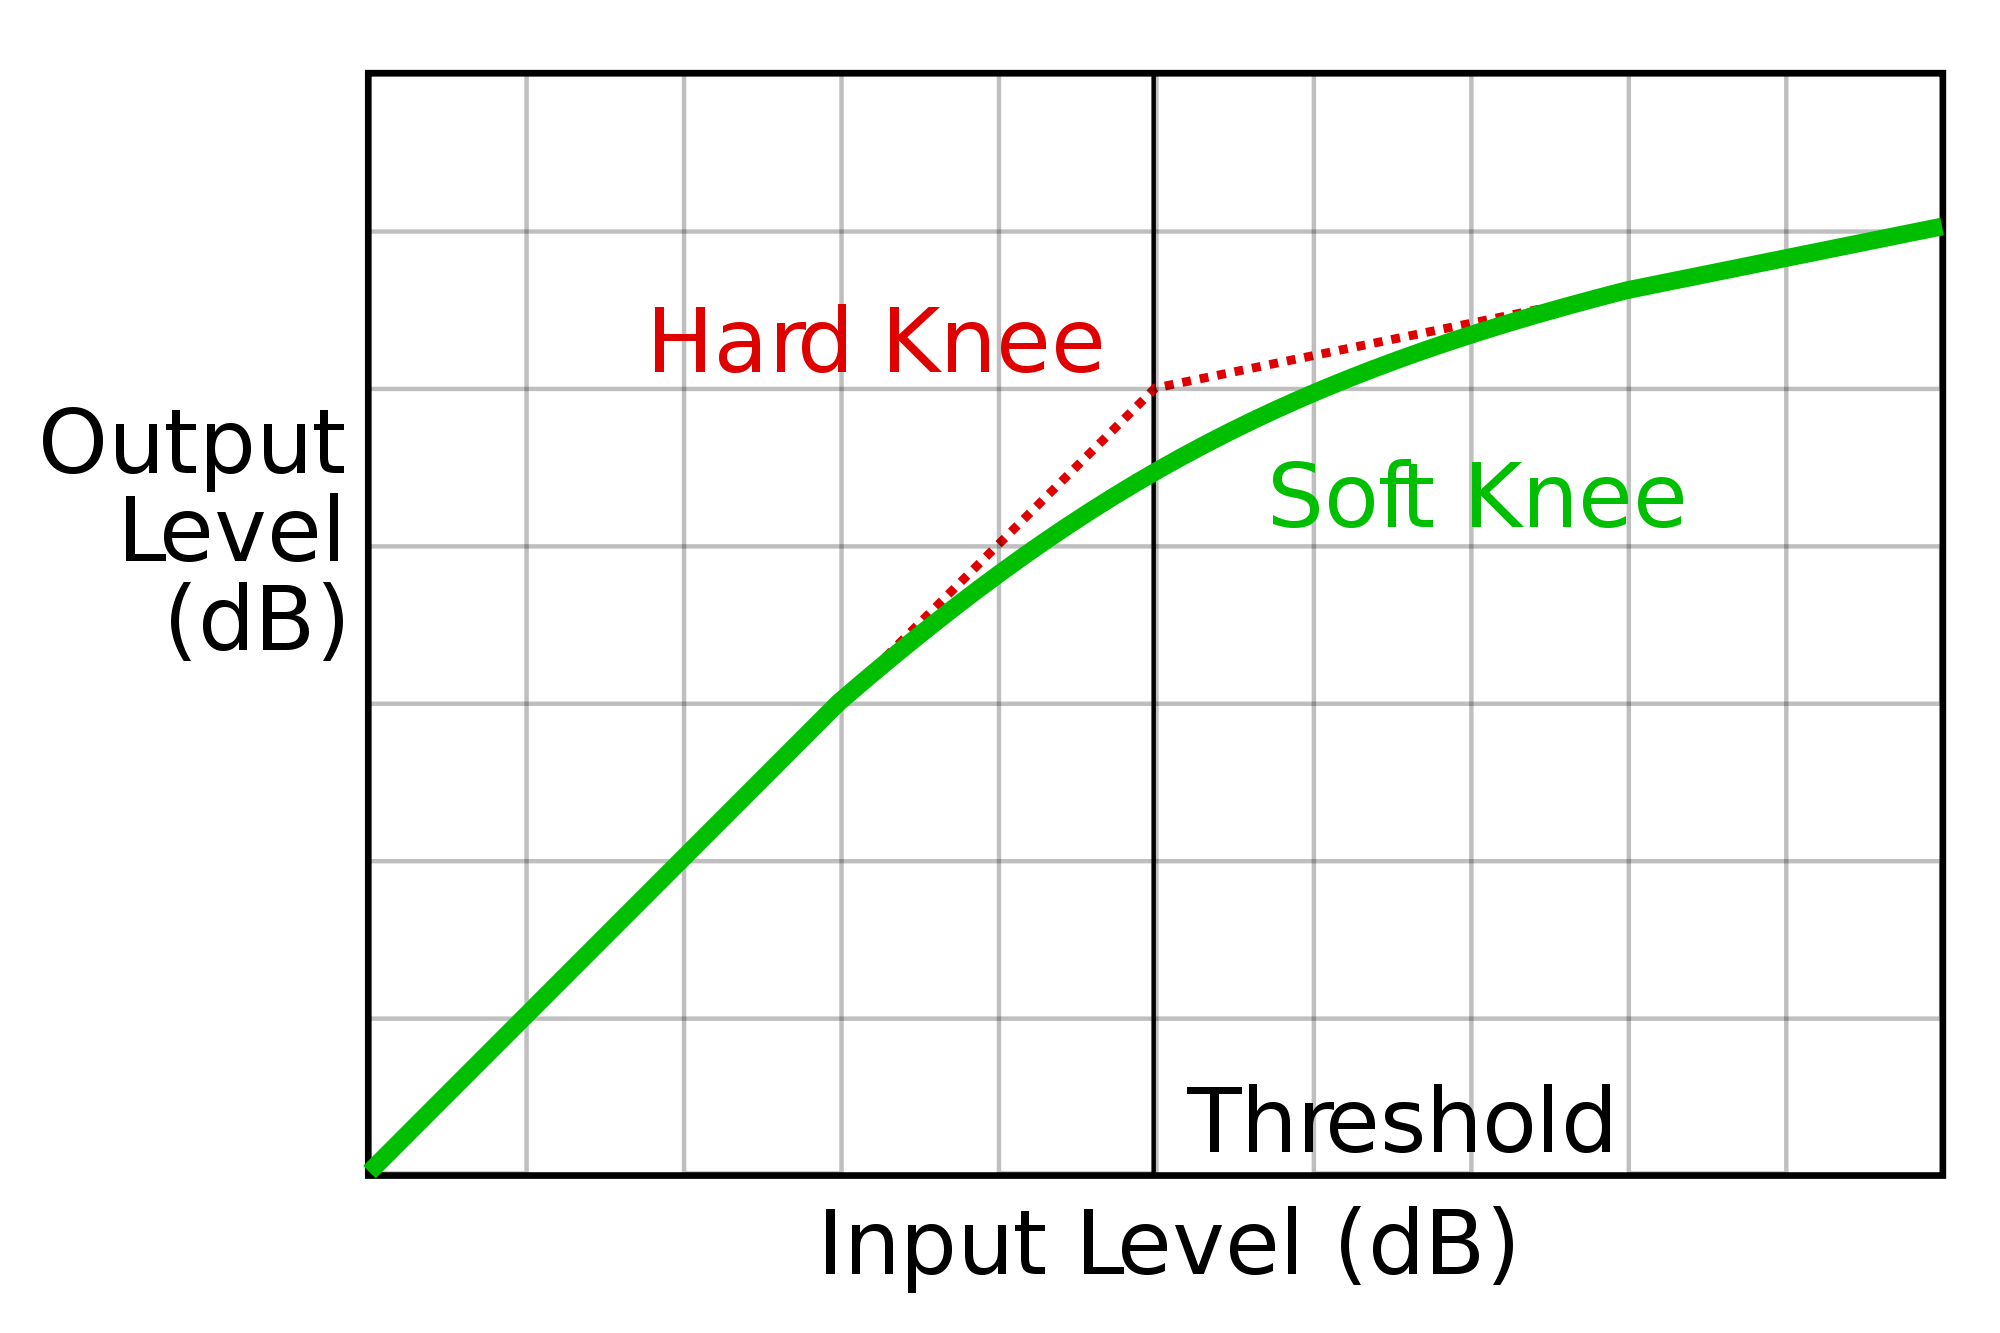 Hard knee vs. soft knee